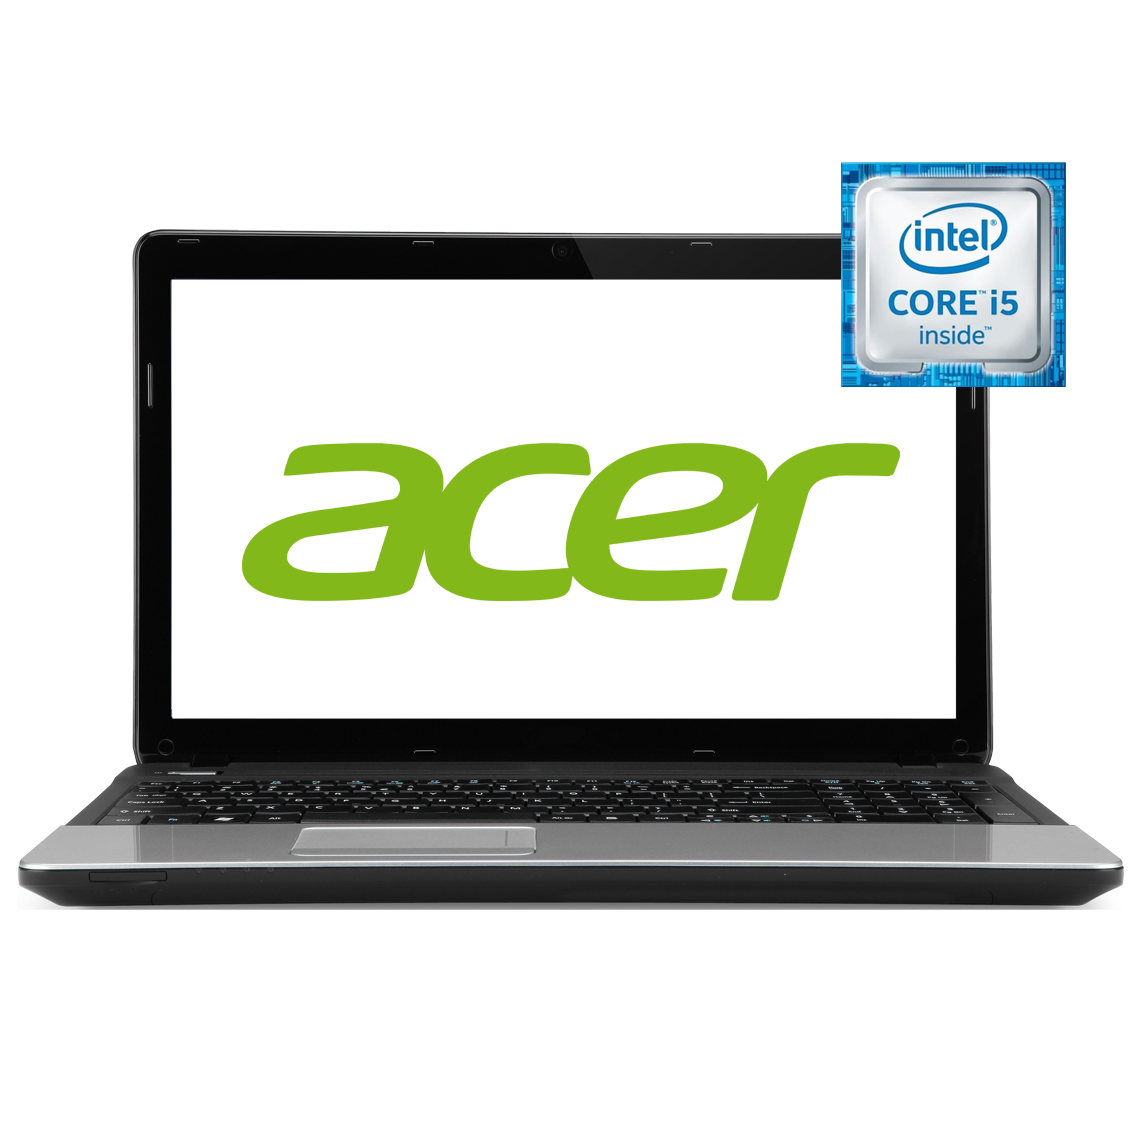 Acer - 17.3 inch Core i5 2nd Gen